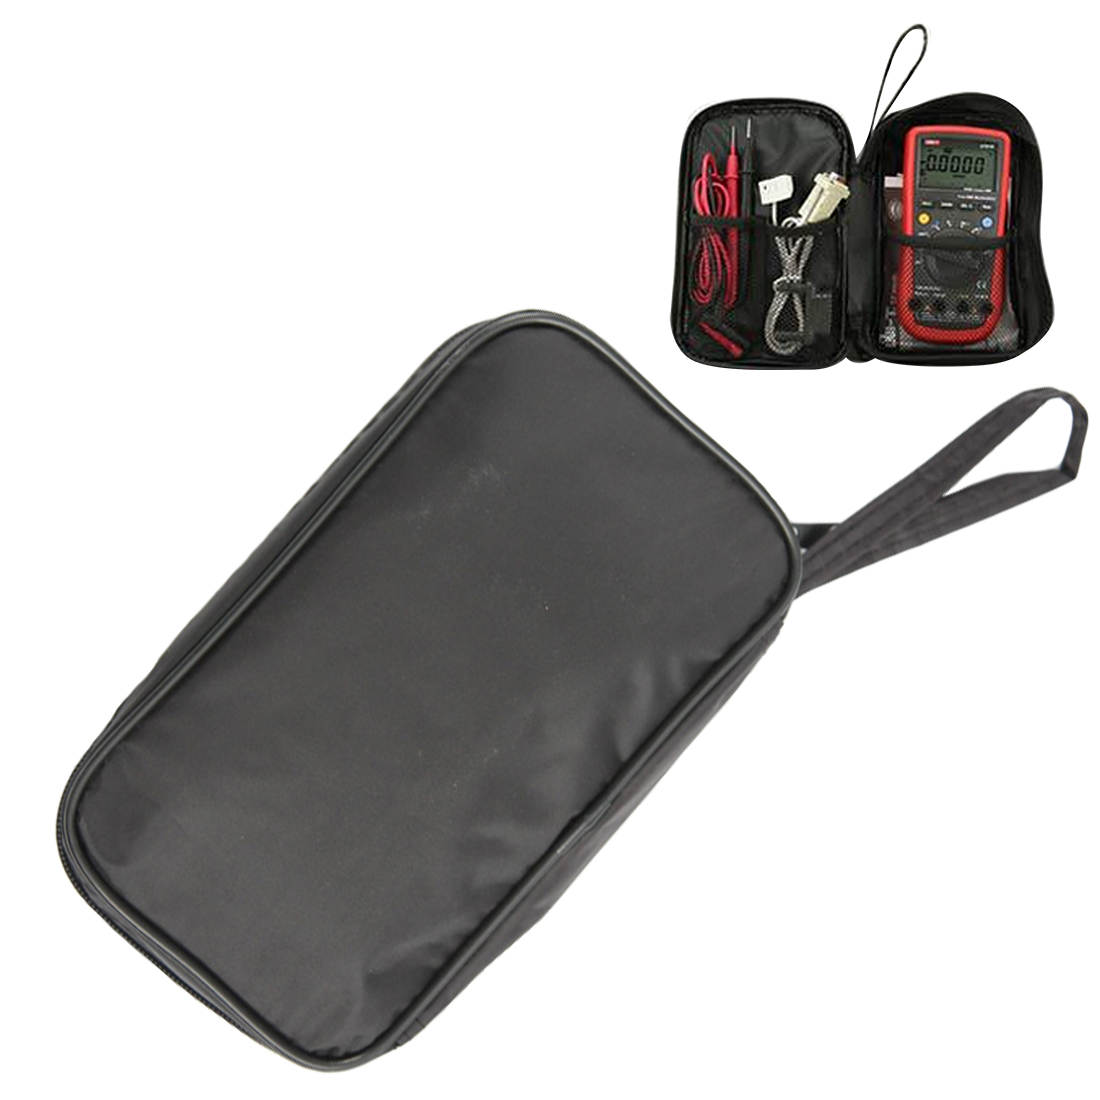 New  20*12*4cm Waterproof Tools Bag Multimeter Black Canvas Bag For UT61 Series Digital Multimeter Cloth Durable